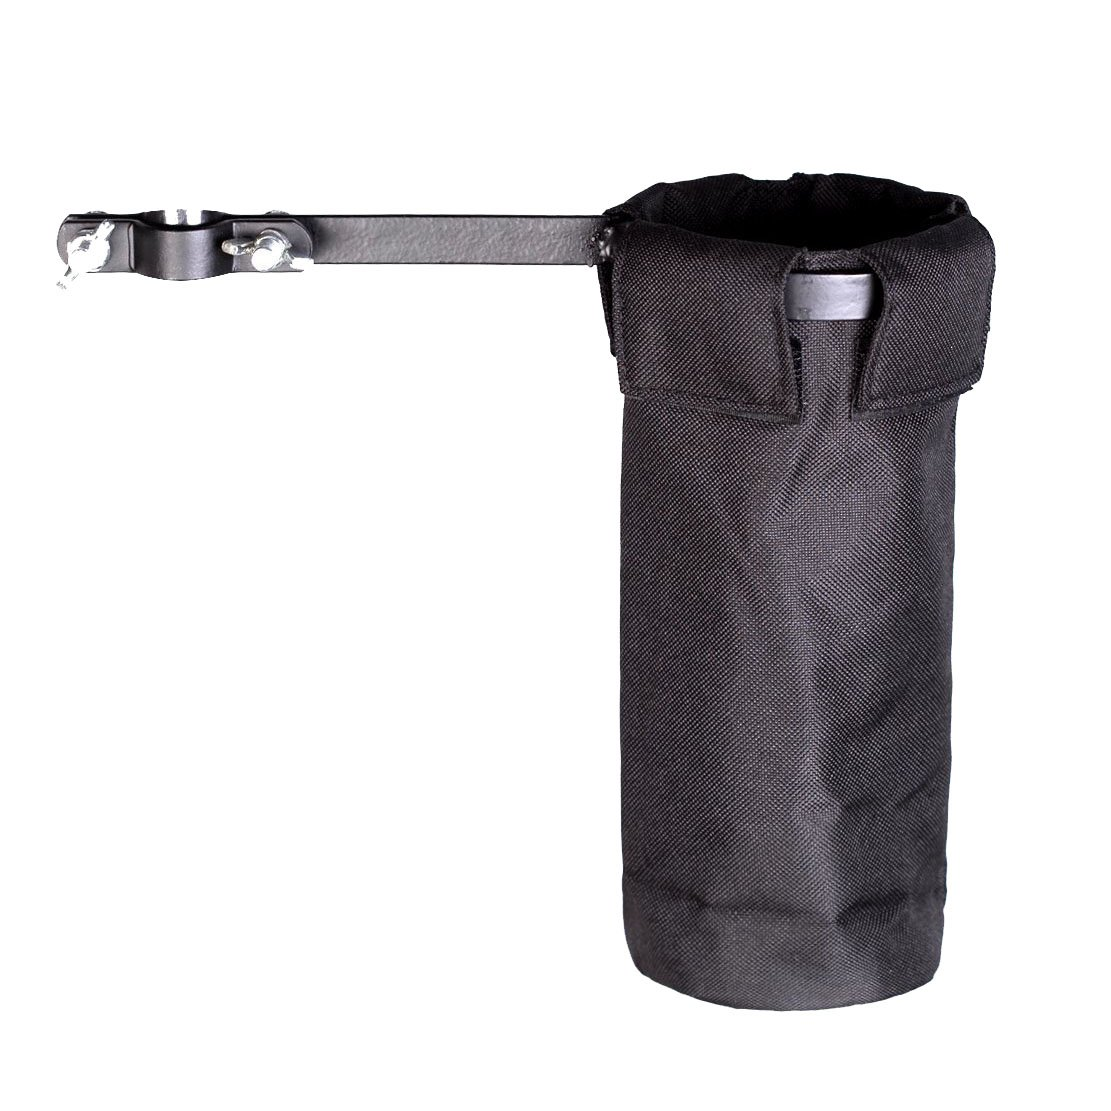 Drumstick Bag - SODIAL(R) Drum Stick Holder Drumstick Bags 059650